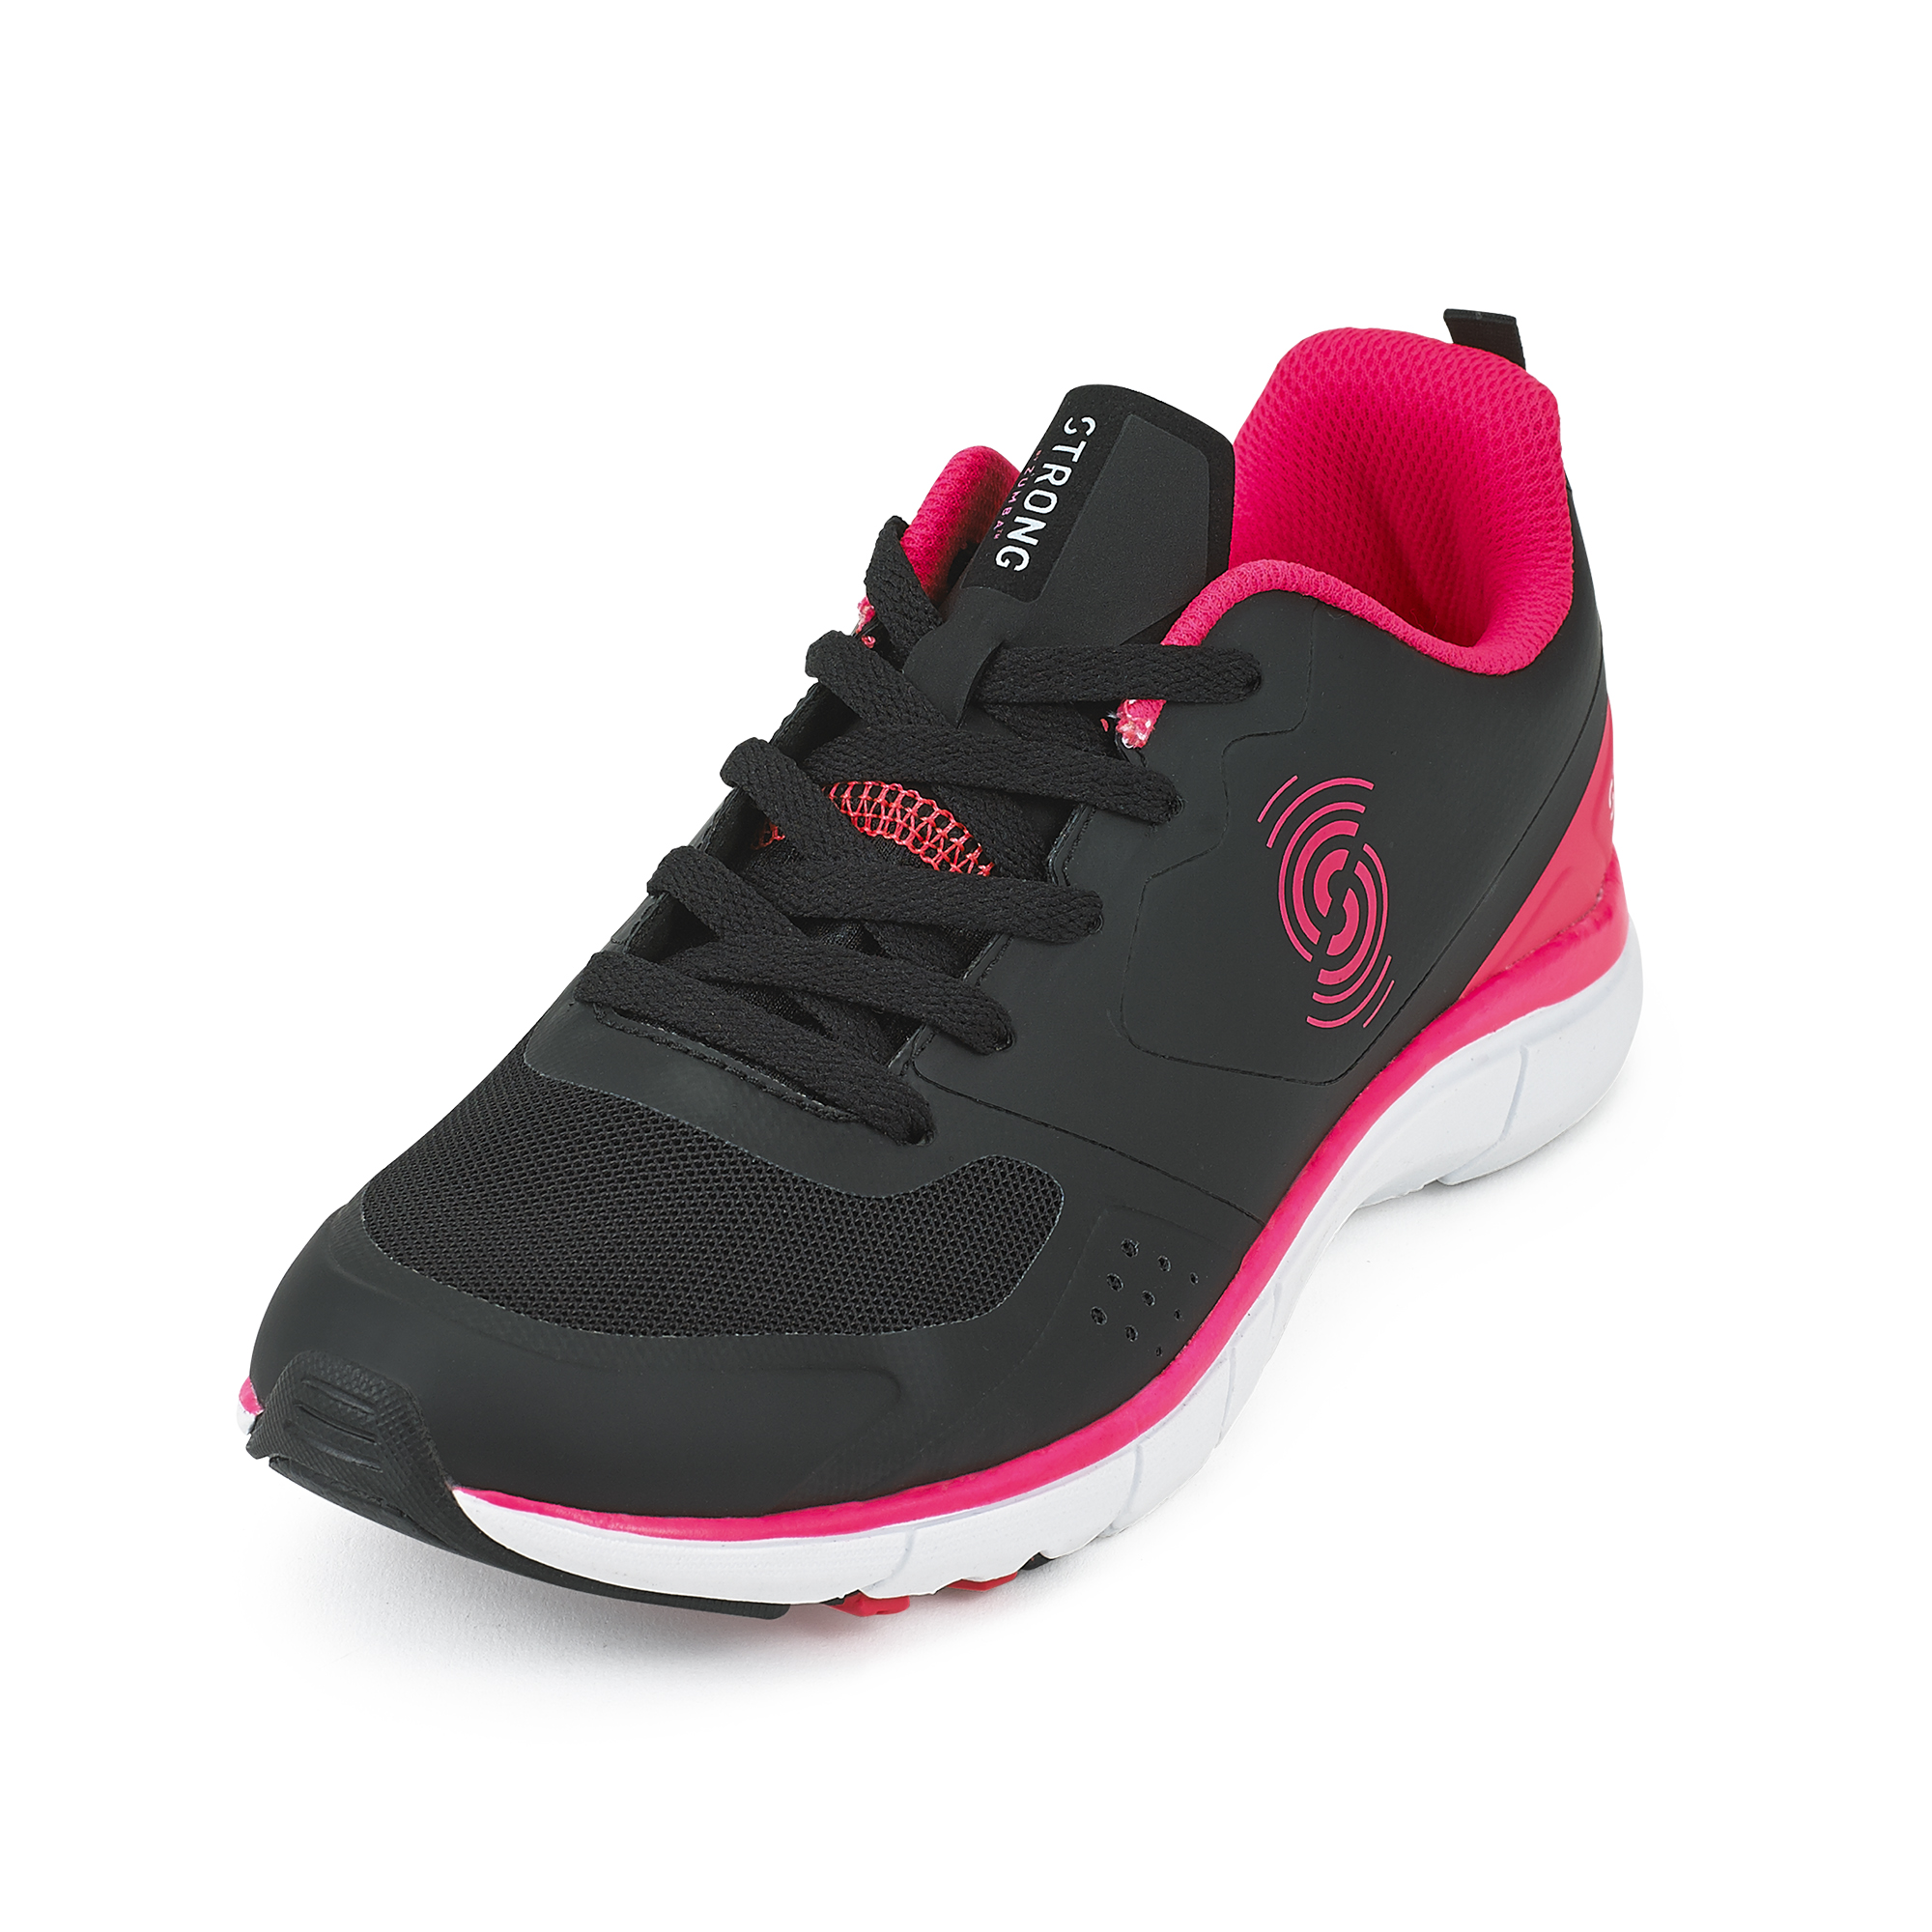 Elskede Strong by Zumba - Shoes Archives | Zumba Shop SEAZumba Shop SEA SH38